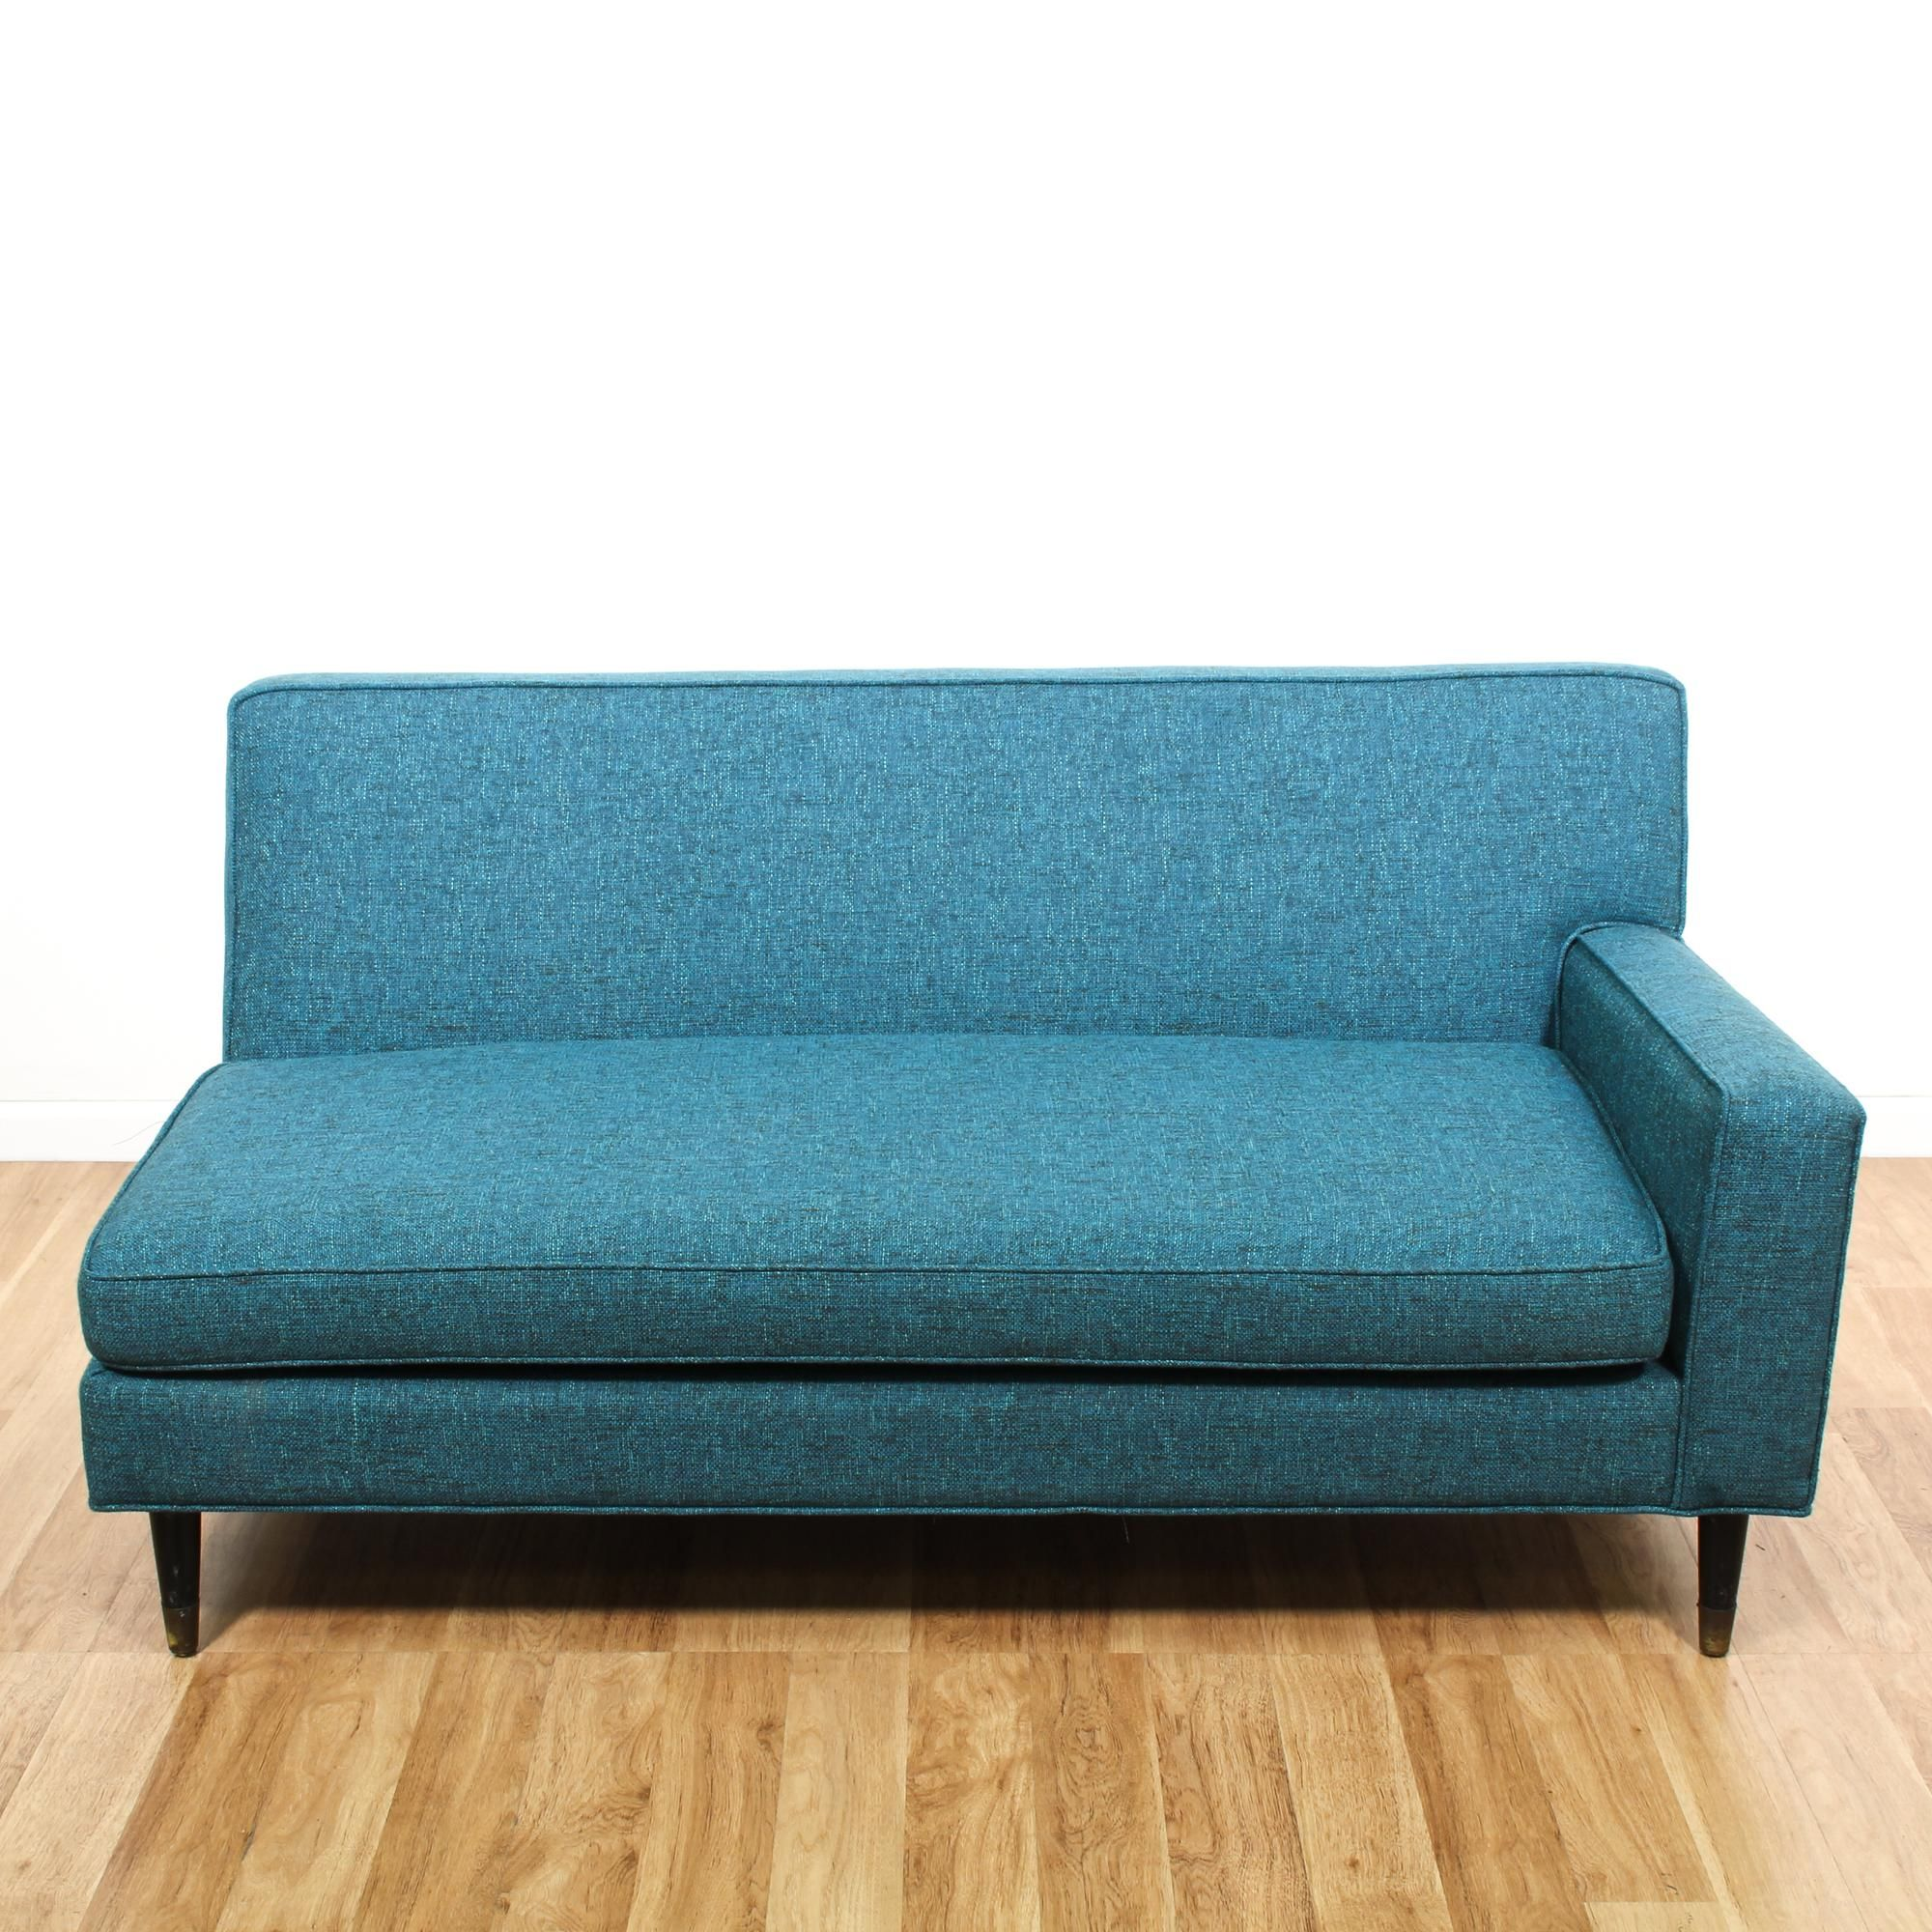 Newly Reupholstered Blue Mid Century Modern Sofa 2 | Loveseat Vintage Furniture  San Diego U0026 Los